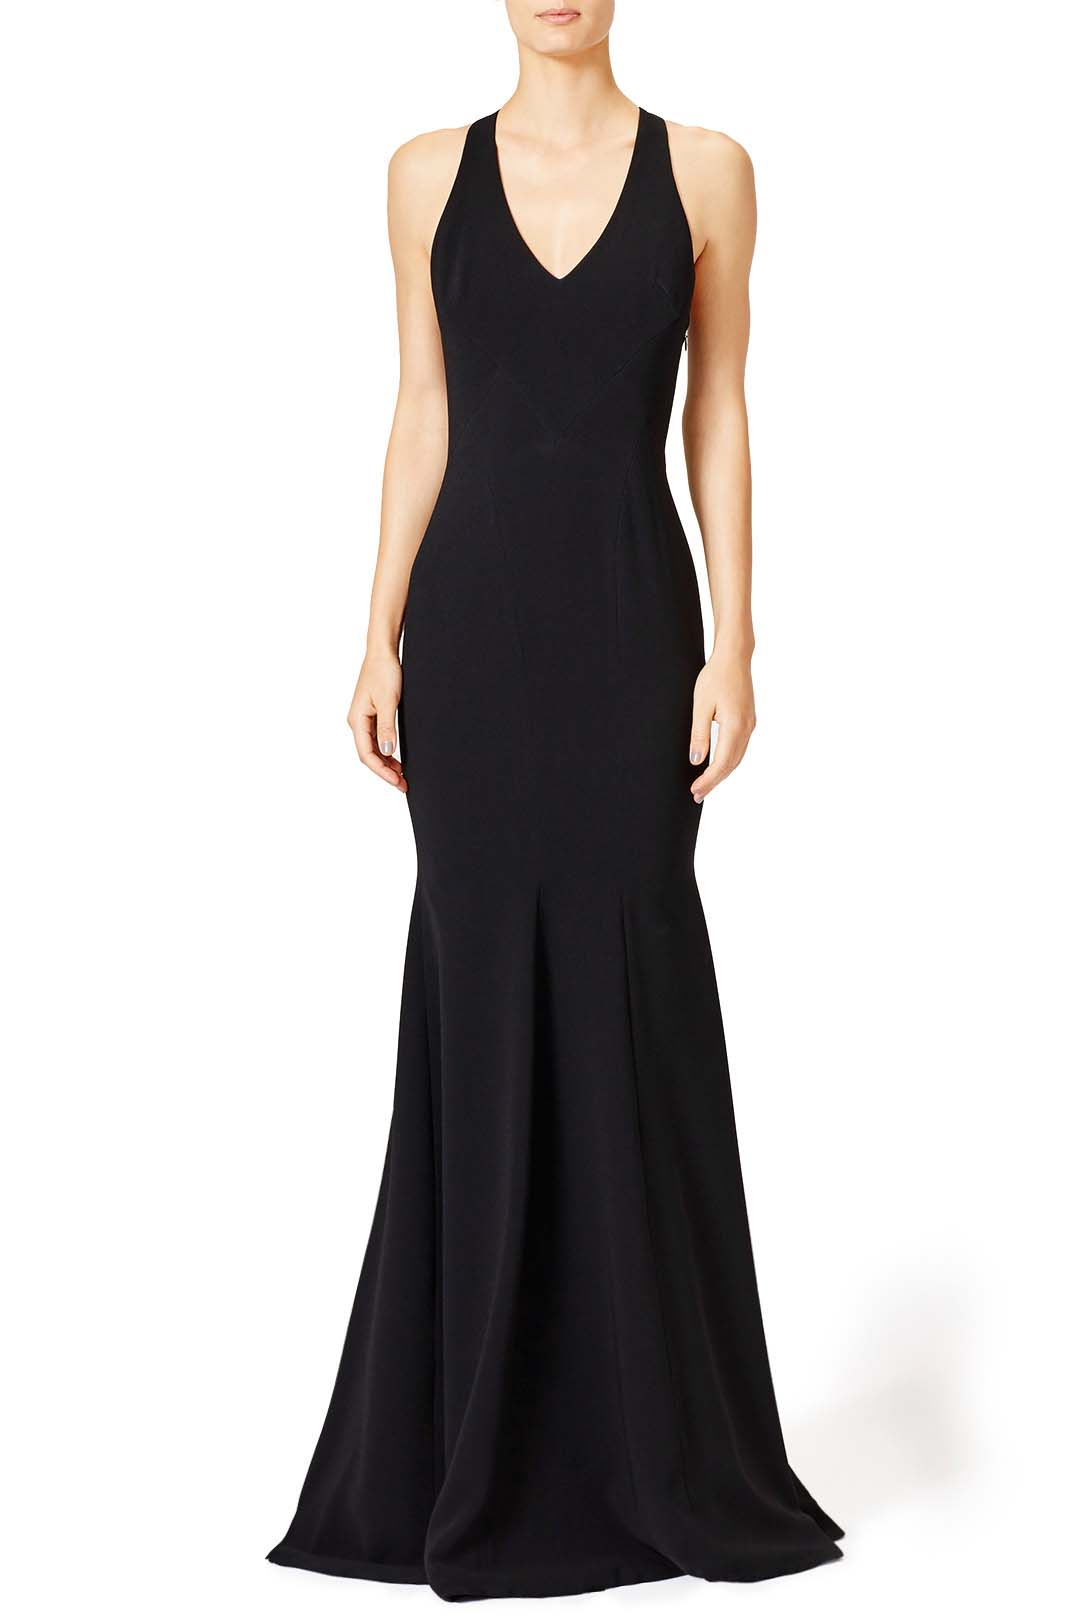 High Quality Rent The Runway Black Masquerade Dress